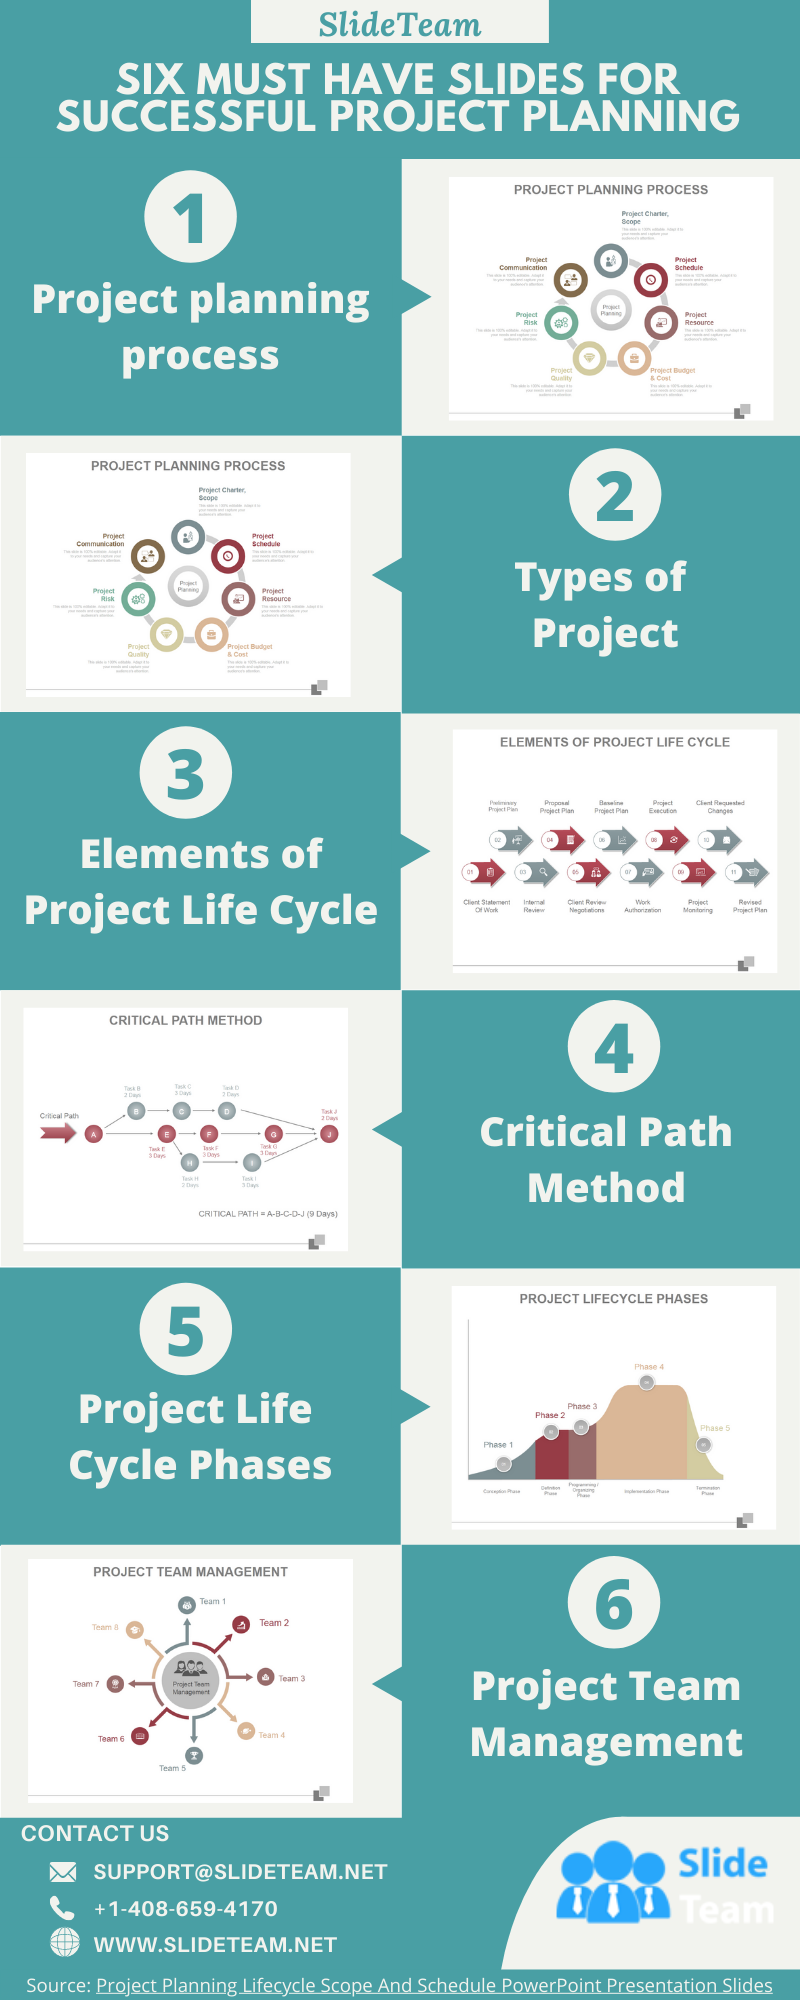 Six Must Have Slides For Successful Project Planning #infographic #Project Planning #infographics